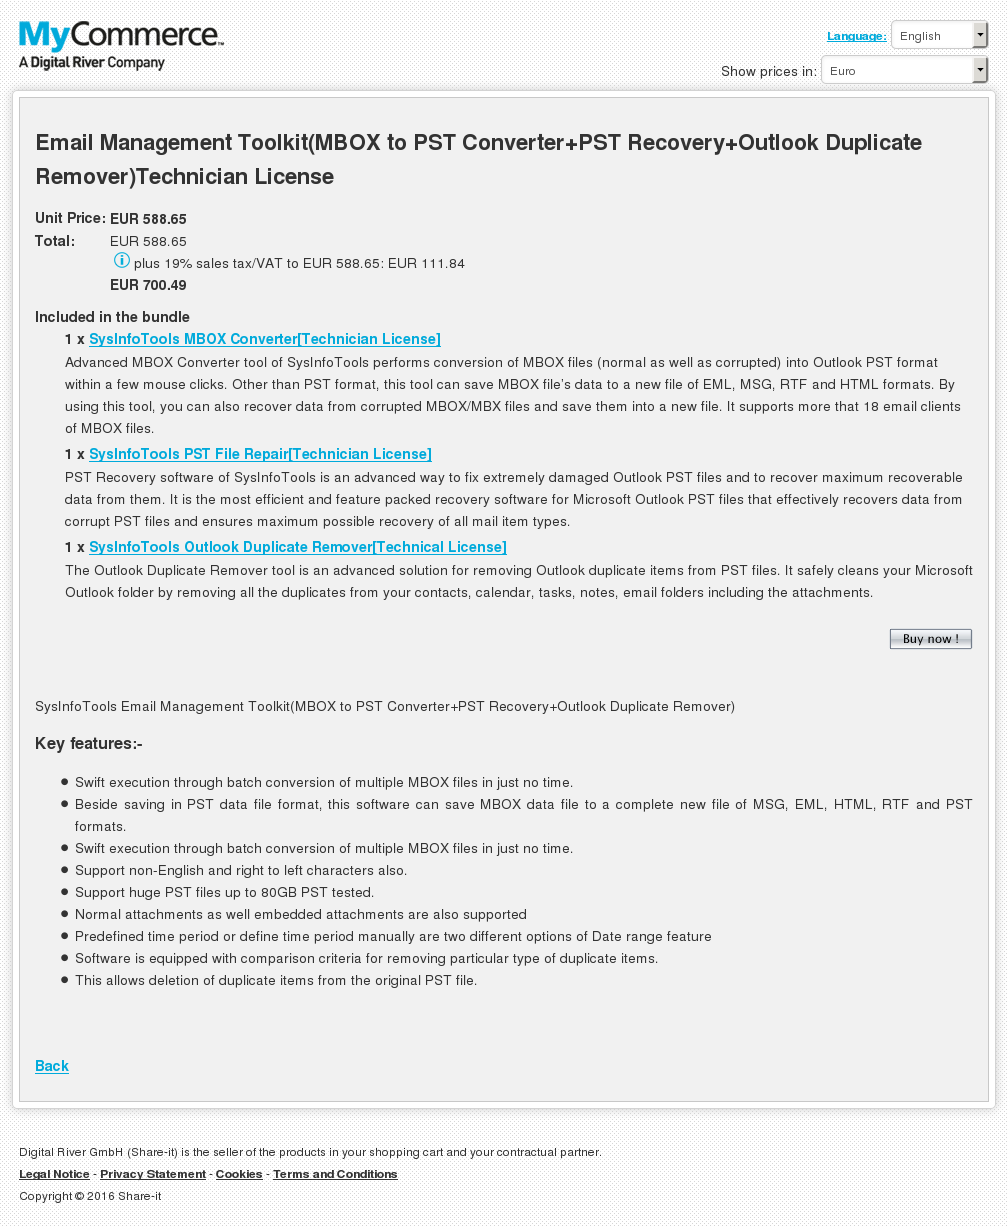 Email Management Toolkit Mbox Pst Converter Recovery Outlook Duplicate Remover Technician License Howto